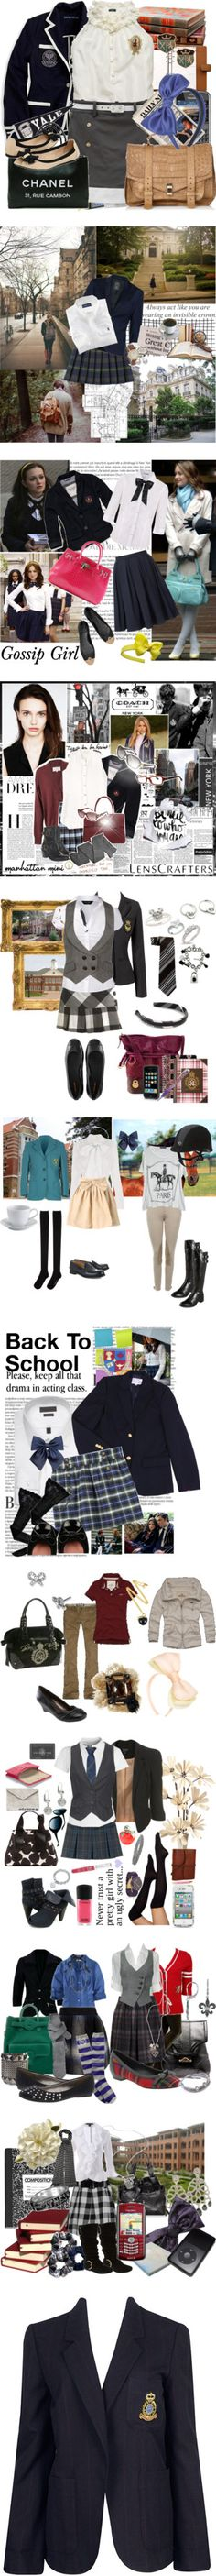 """""""Private School Uniforms"""" by taryn-scott ❤ liked on Polyvore"""